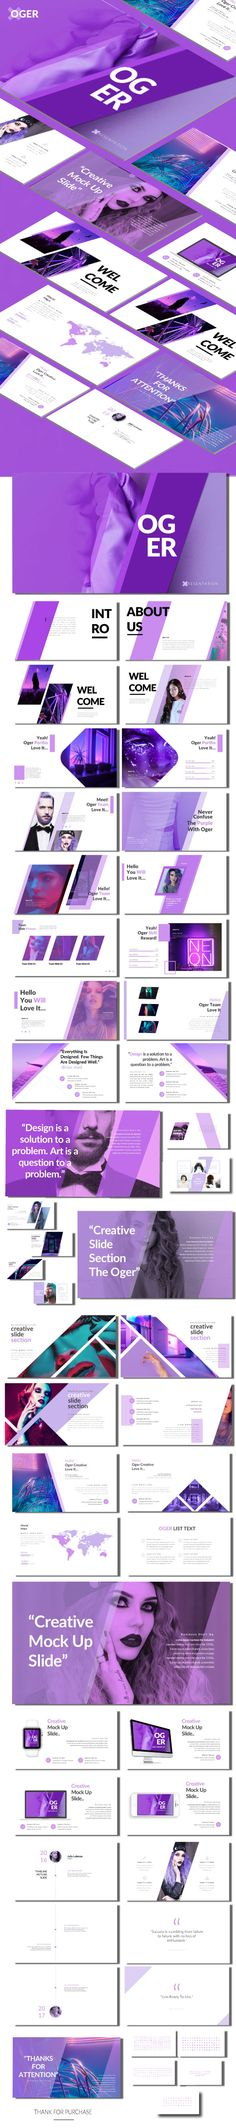 Buy Oger - Keynote Presentation by LUCKYSIGN on GraphicRiver. MAIN FILE: Images Placeholder Drag and Drop Image Theme Colour Option, Easy to change colors, Fully editable text, ph. Professional Powerpoint Templates, Business Powerpoint Templates, Powerpoint Presentation Templates, Keynote Template, Presentation Layout, Business Presentation, Image Theme, Brochure Inspiration, Slide Template